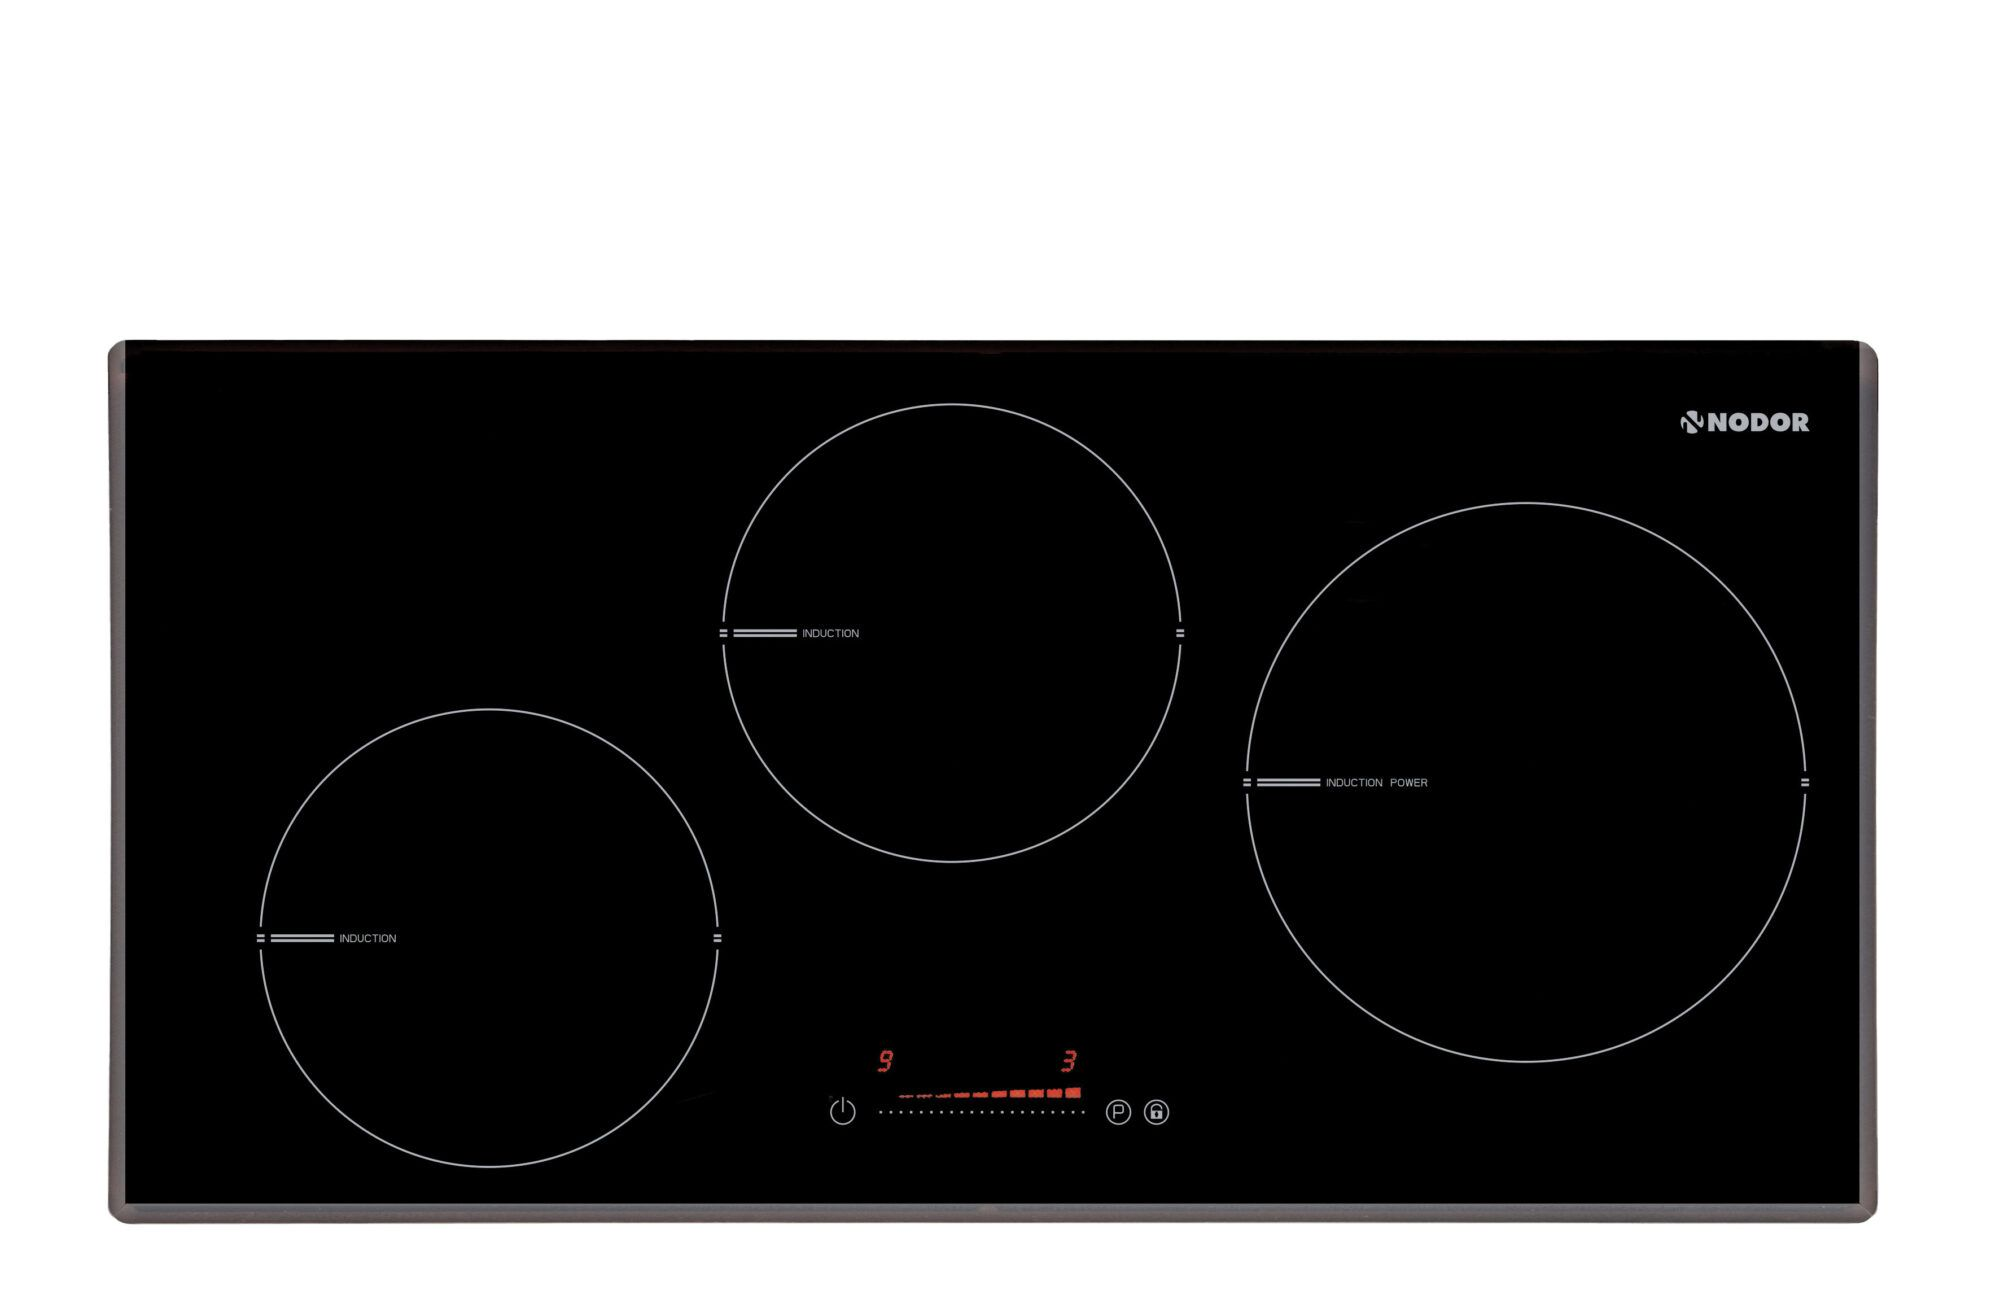 nodor i 3070 sl bk integrado induction hob negro